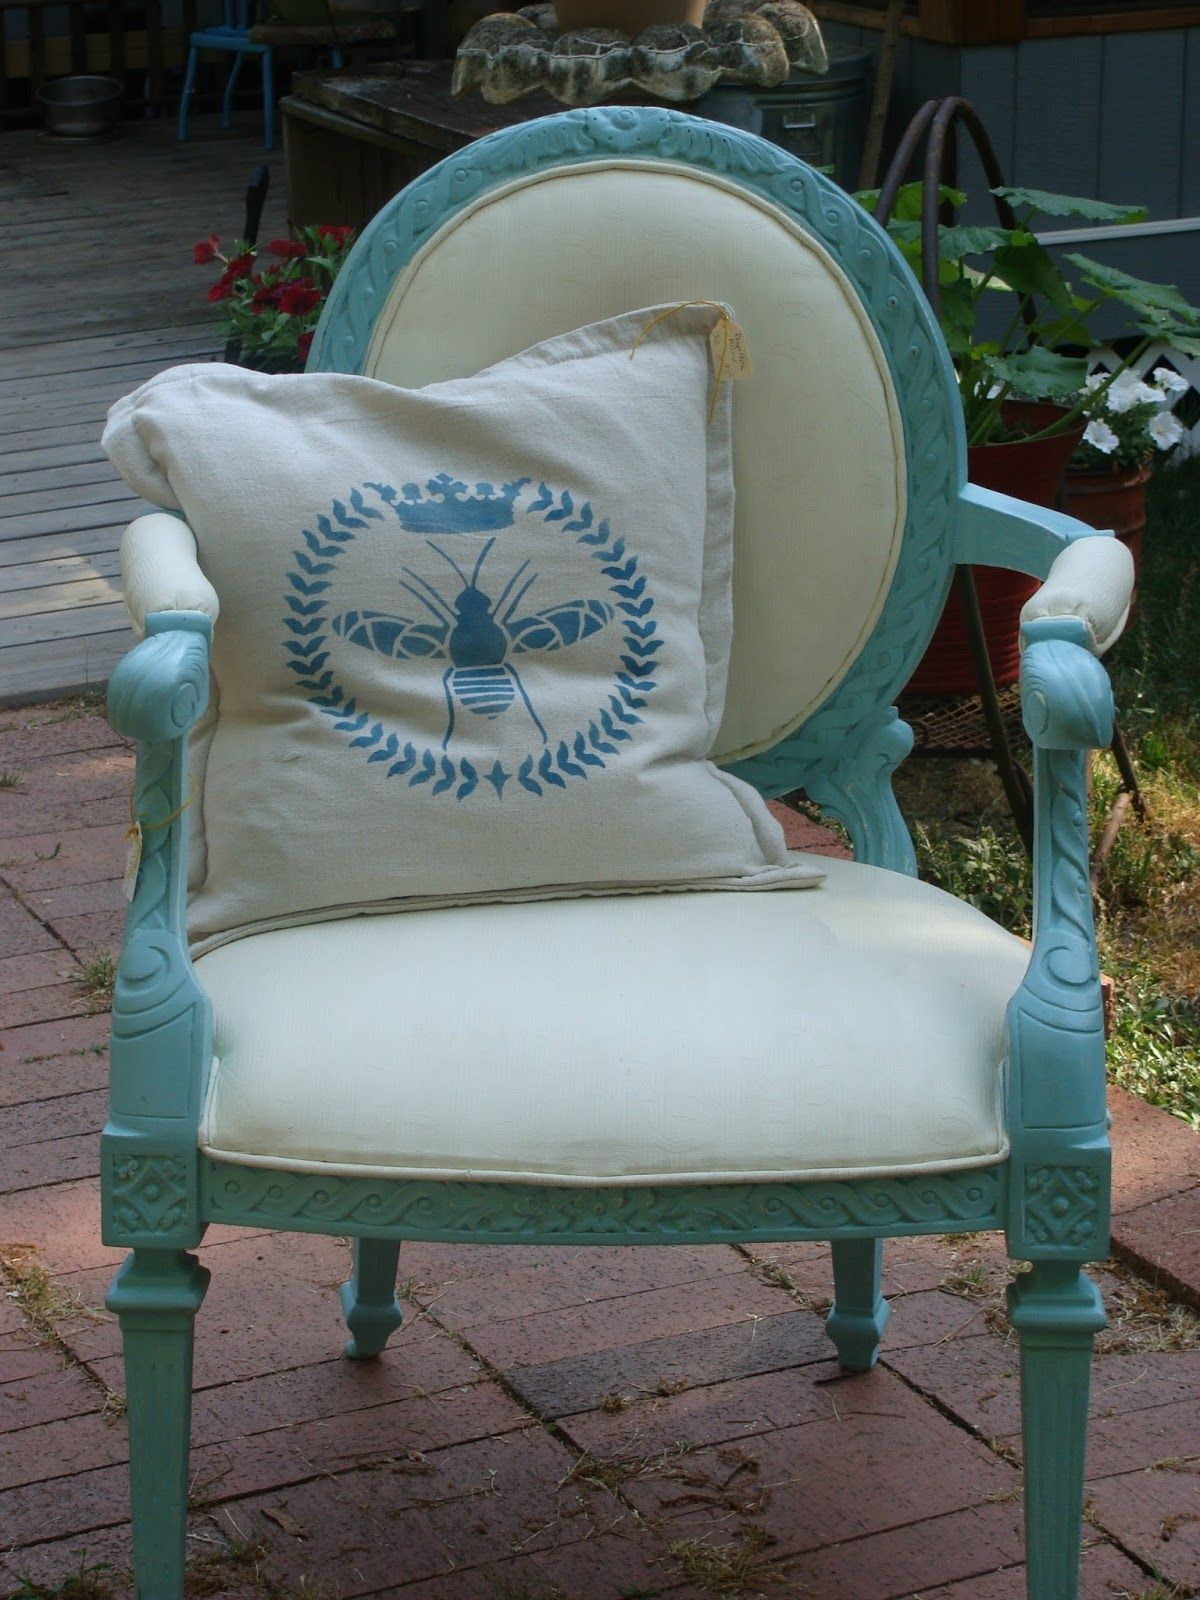 Red Tin Inn Silhouette stencil on drop cloth pillow...chalk painted french chair